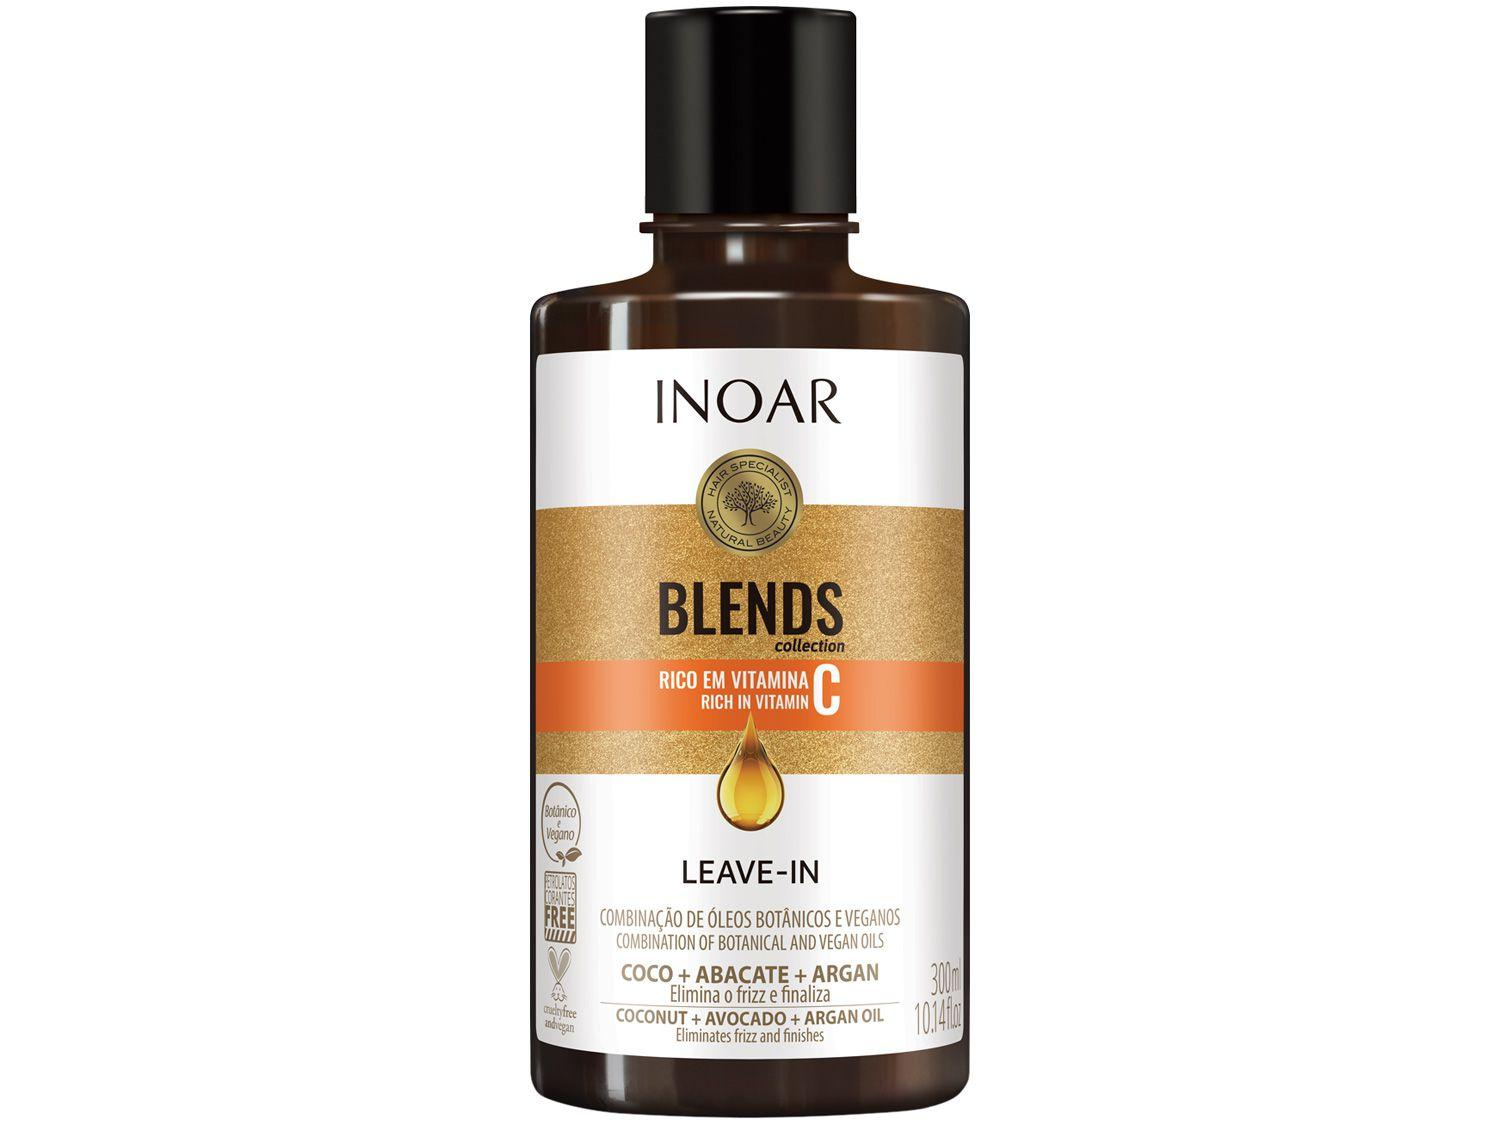 Leave-in Inoar Blends Collection 300ml